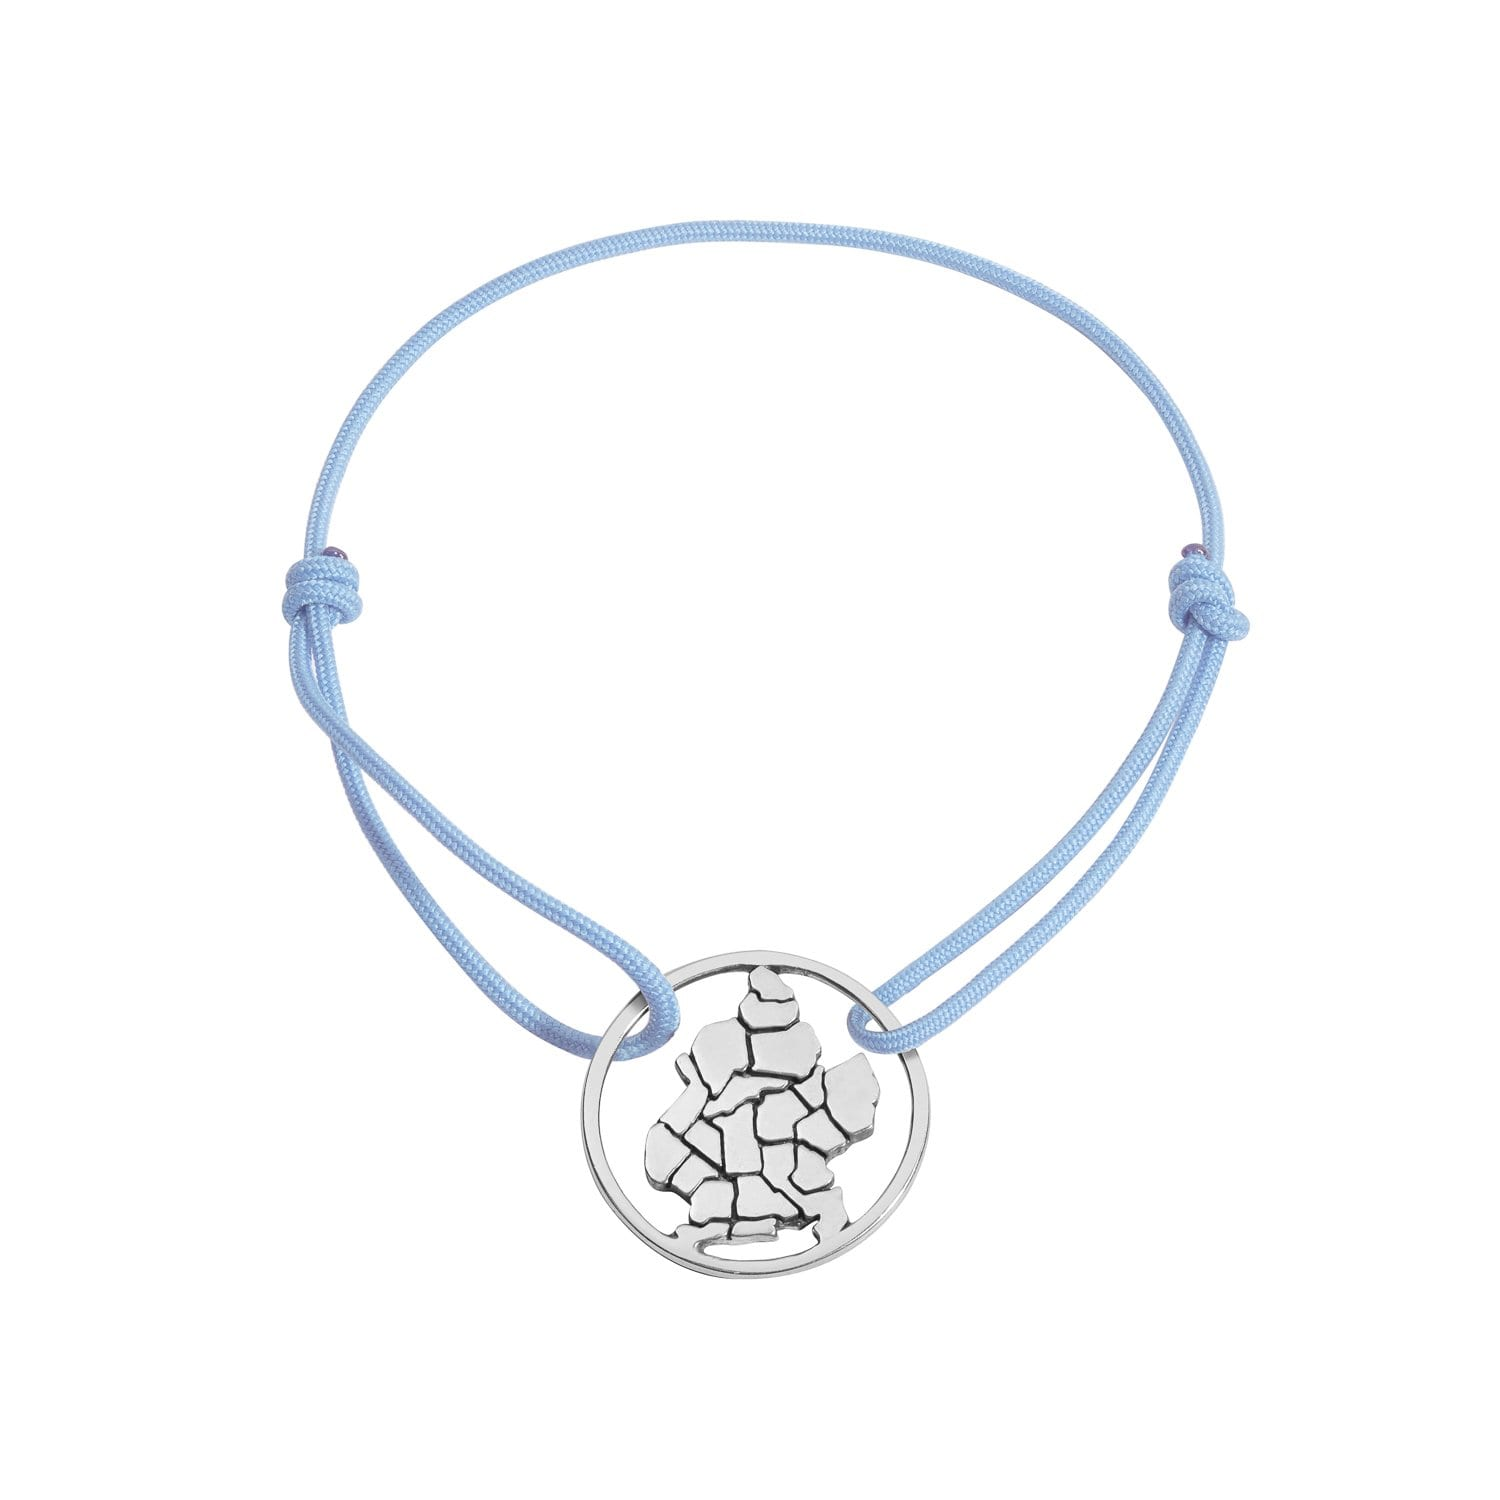 Catherine Demarchelier | Brooklyn Bracelet | CD Charms